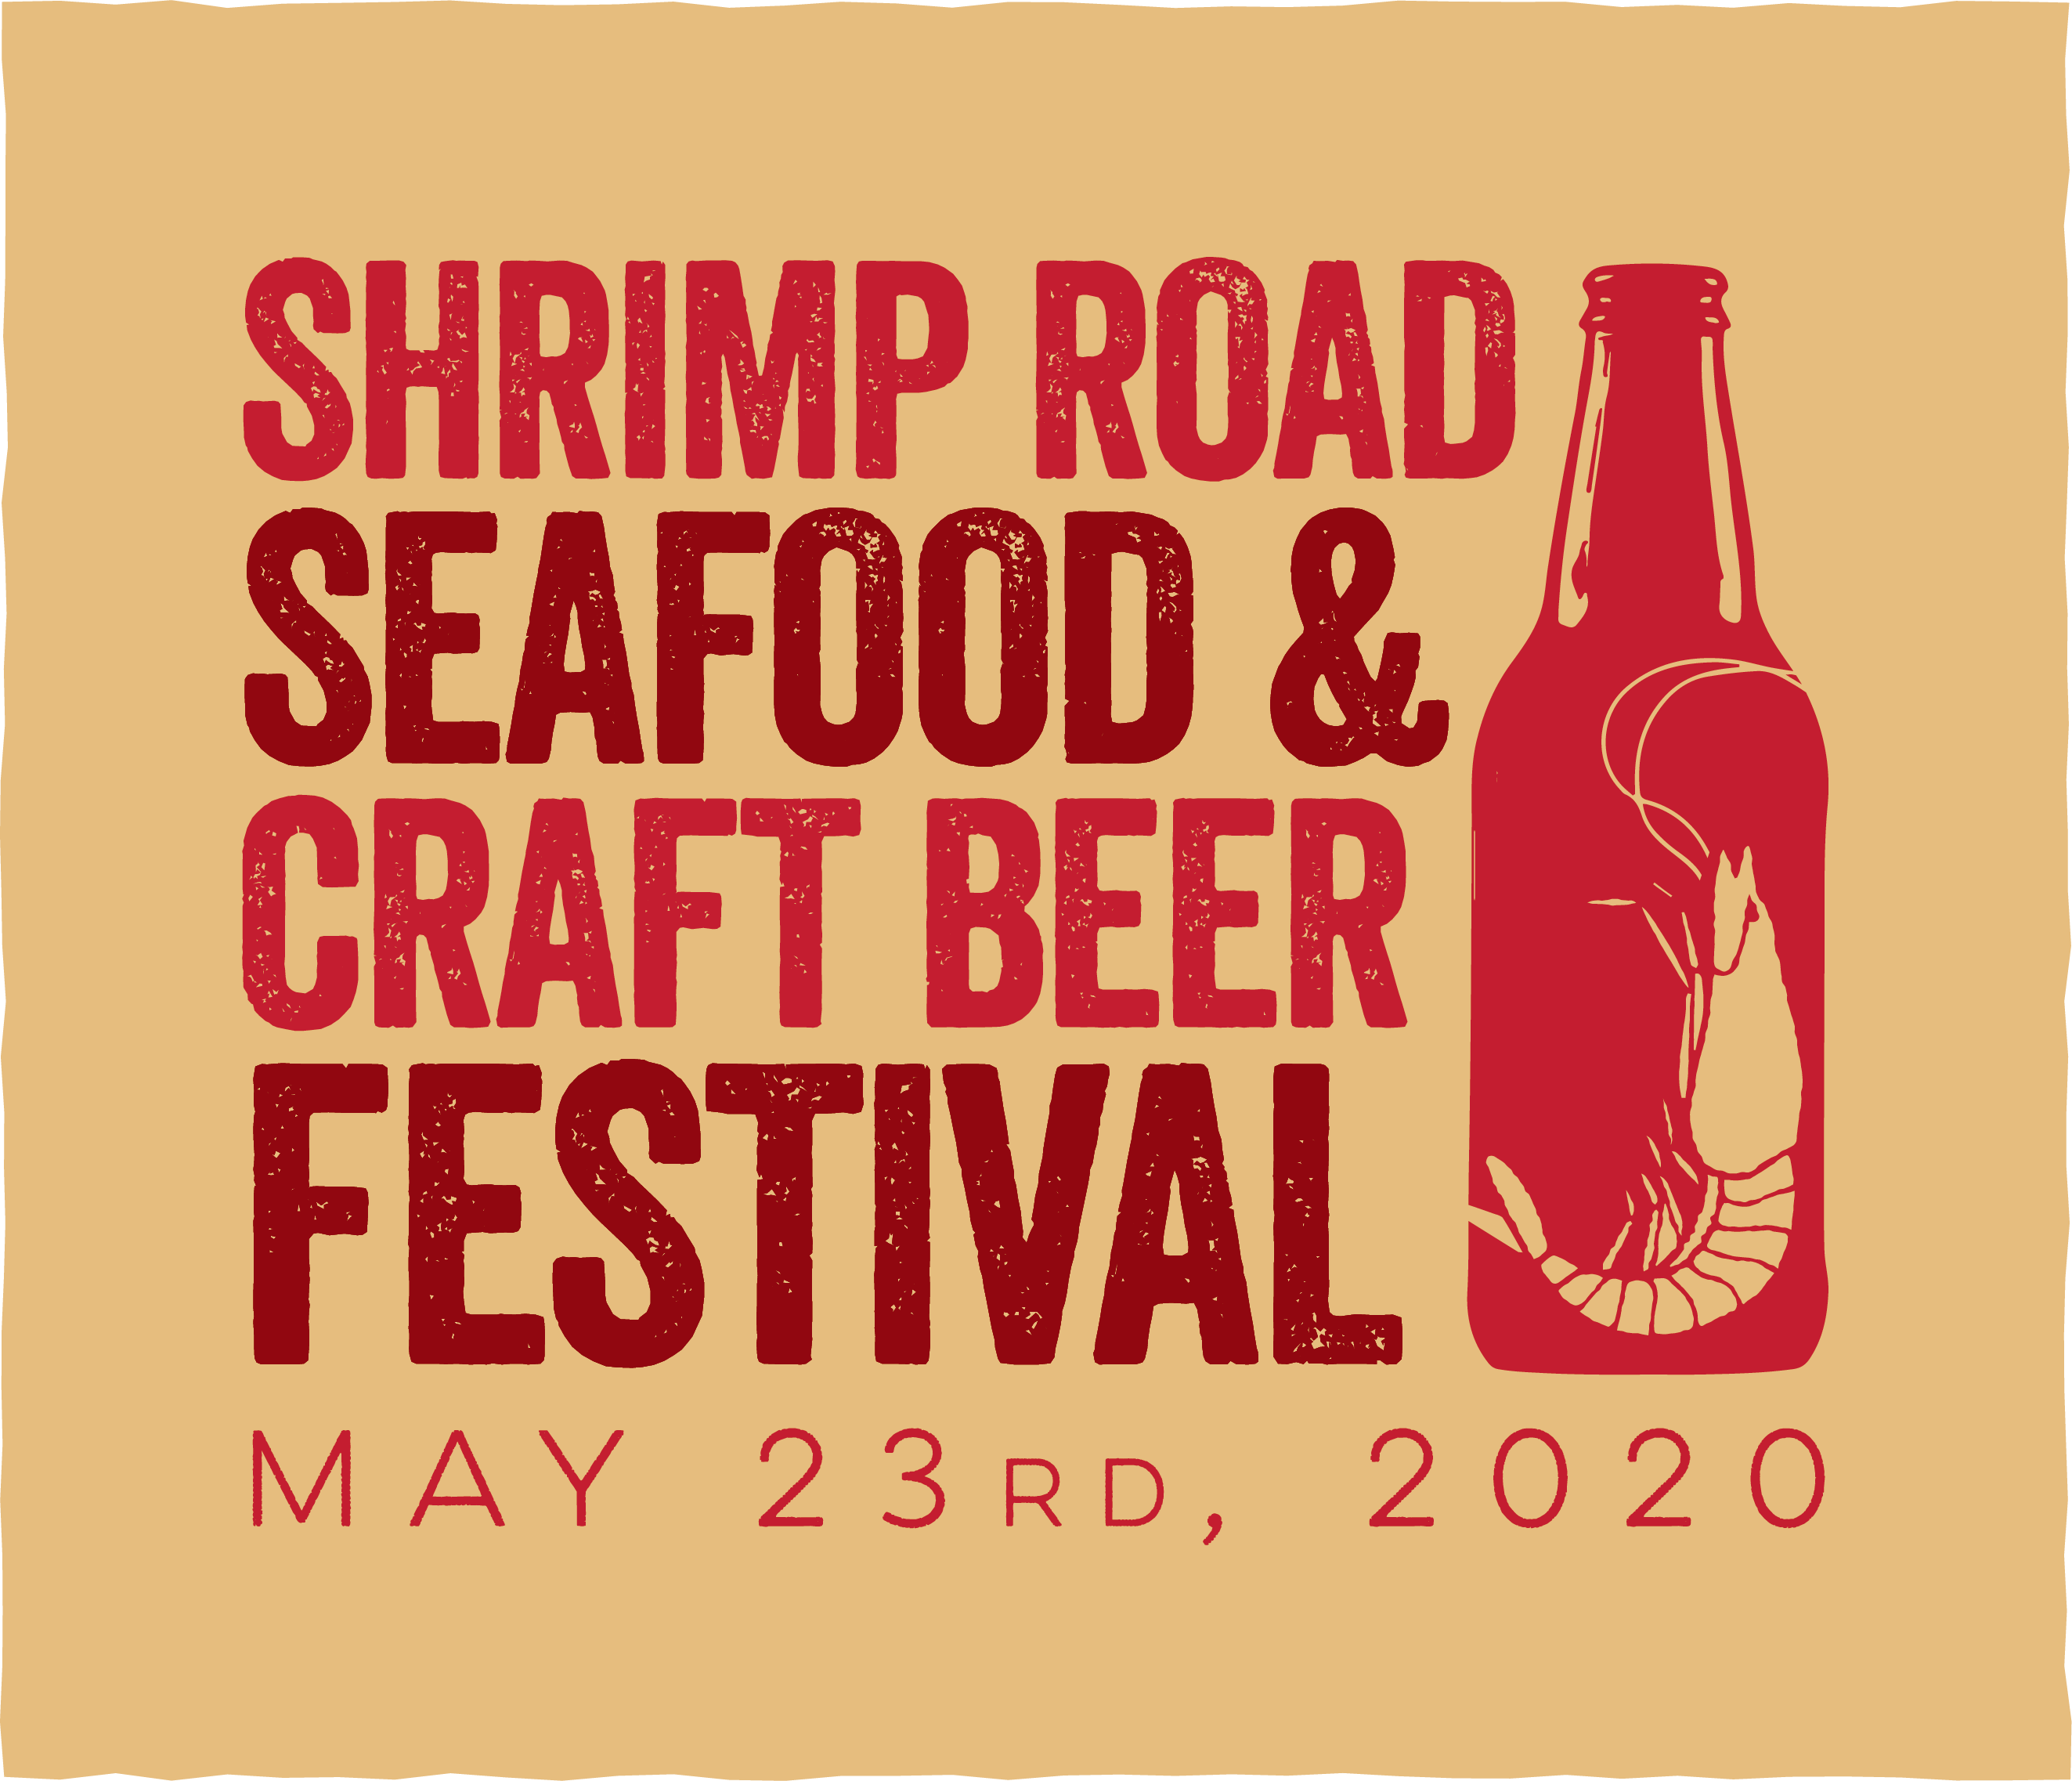 shrimp road seafood festival flyer